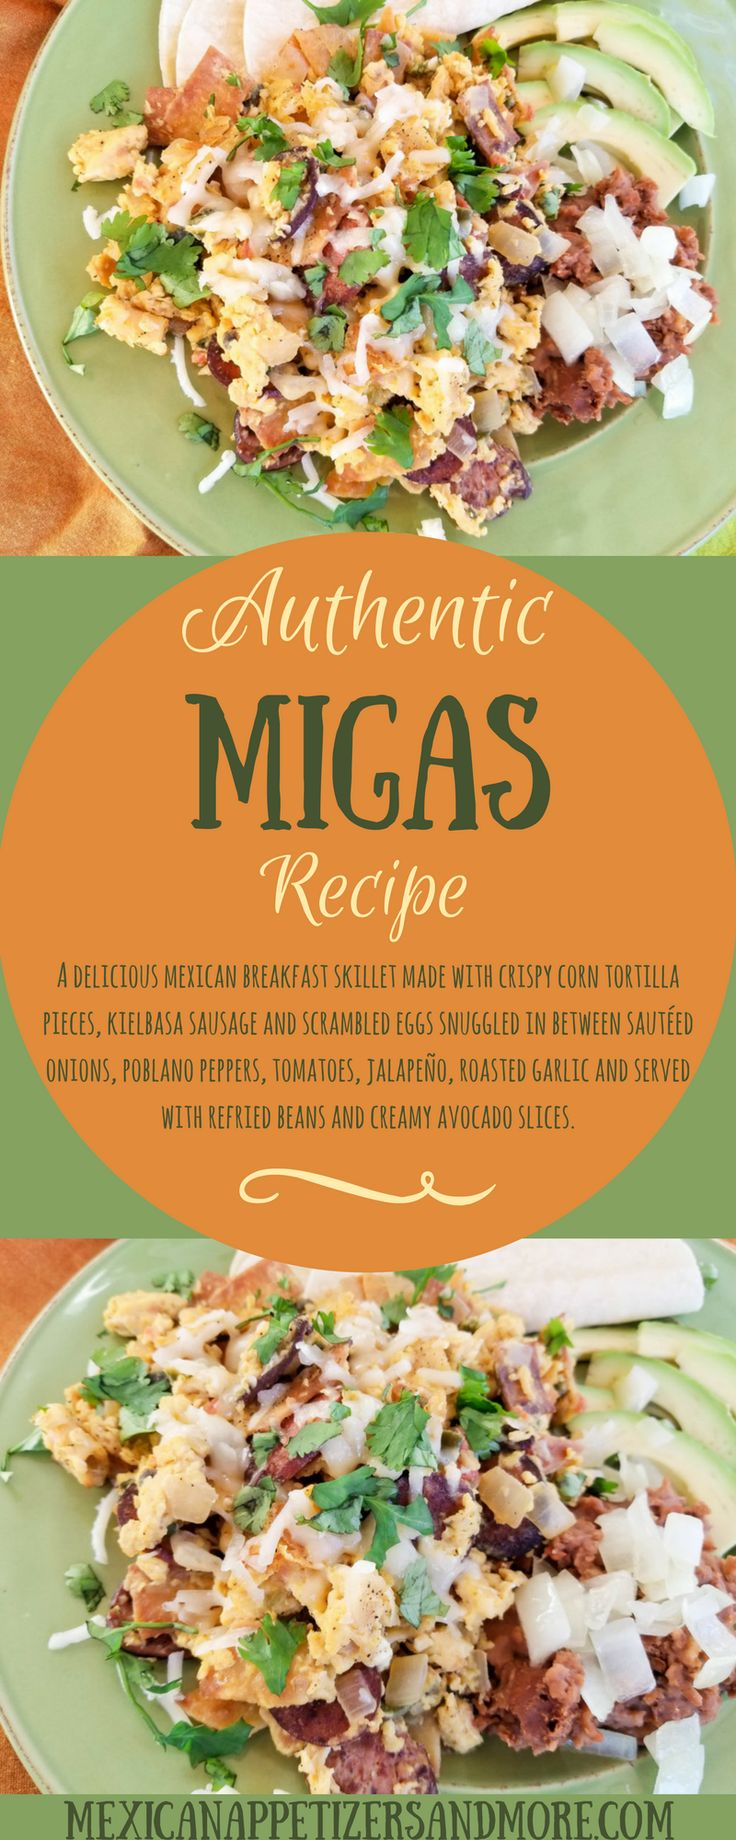 This Delicious Authentic Migas Recipe is a fabulous Mexican Breakfast Skillet made with crispy corn tortilla pieces, kielbasa sausage and scrambled eggs snuggled in between sautéed onions, poblano peppers, tomatoes, jalapeño, roasted garlic and served with refried beans and creamy avocado slices. #mexicanbreakfast #migas #authenticmigas #mexicanfood   mexicanappetizersandmore.com